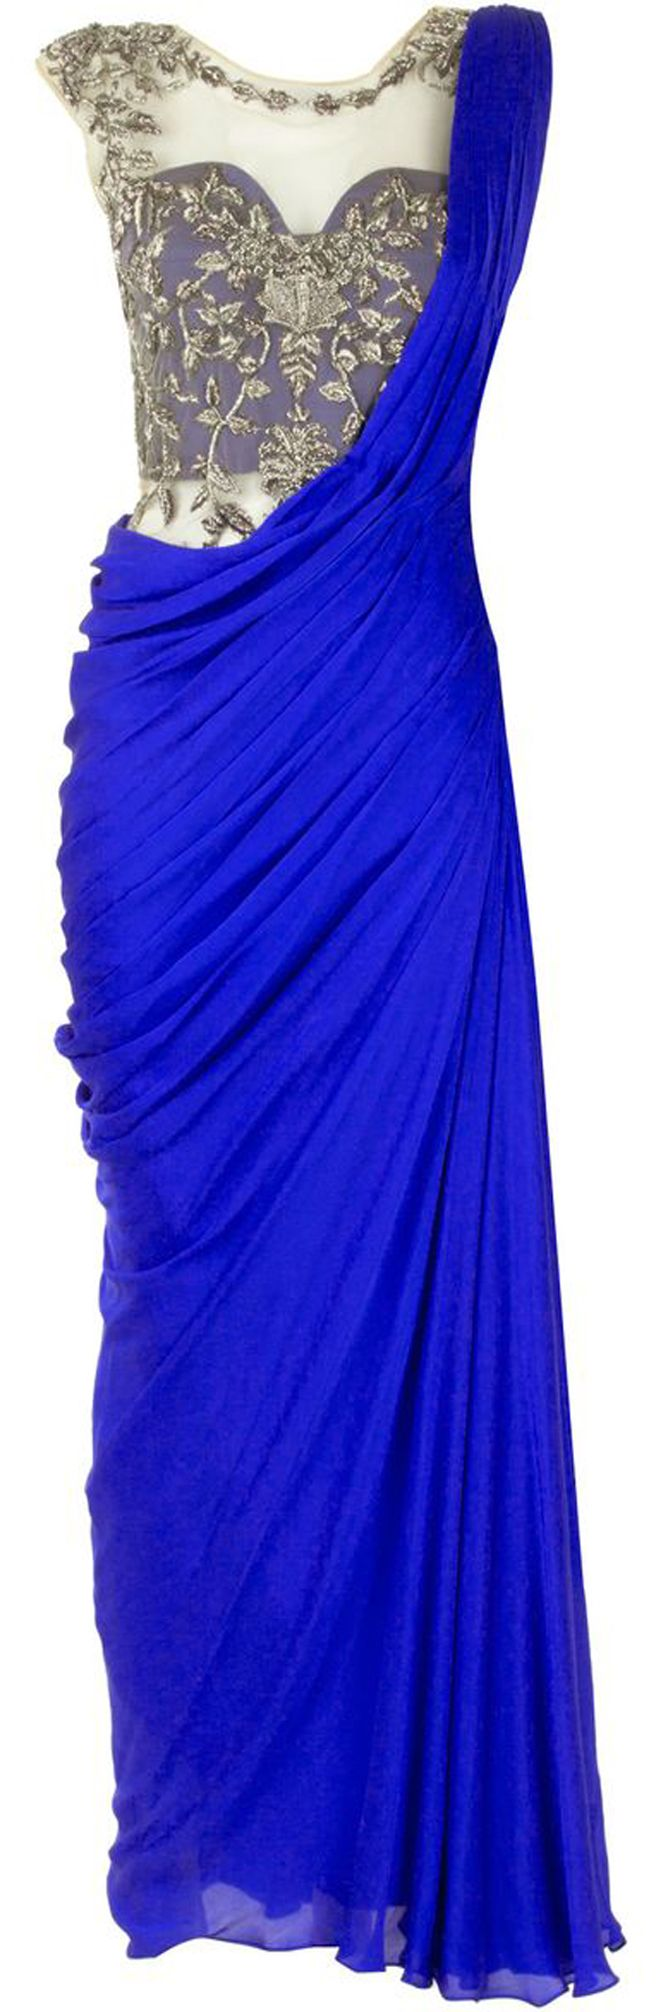 SONAAKSHI RAAJ Royal blue embroidered sari gown